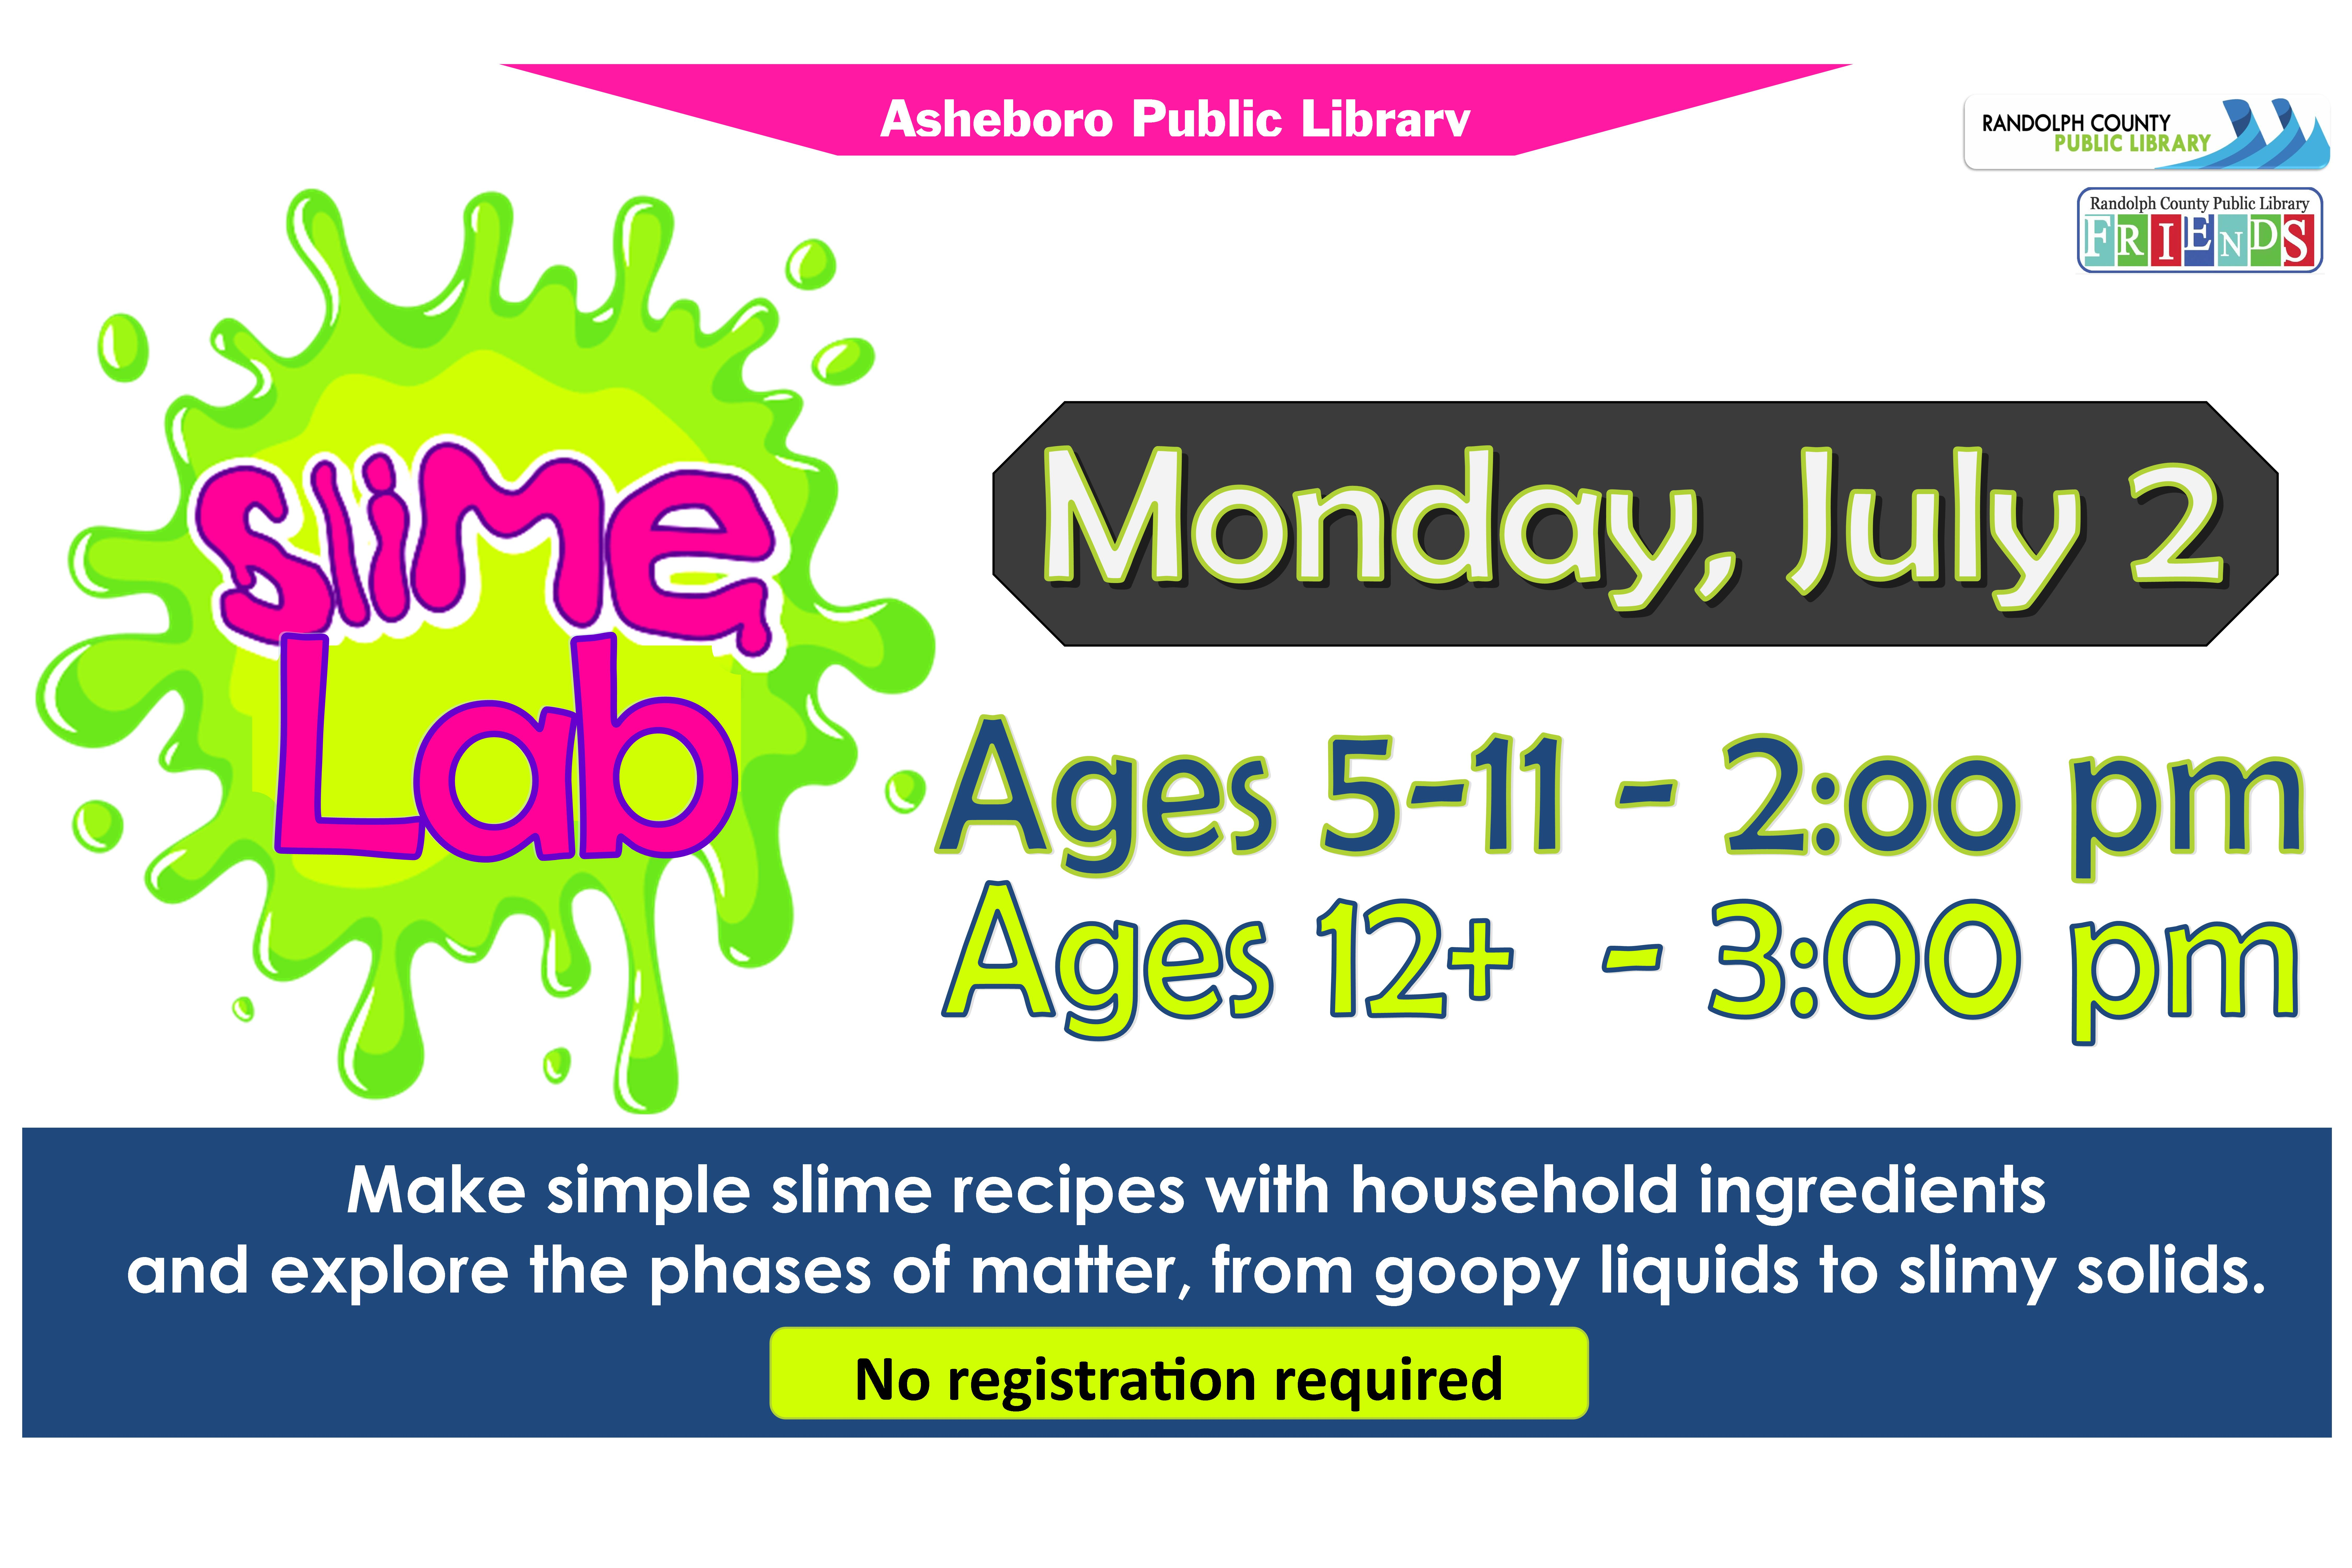 Make simple slime recipes for free on Monday July 2 starting at 2pm on Asheboro Library!